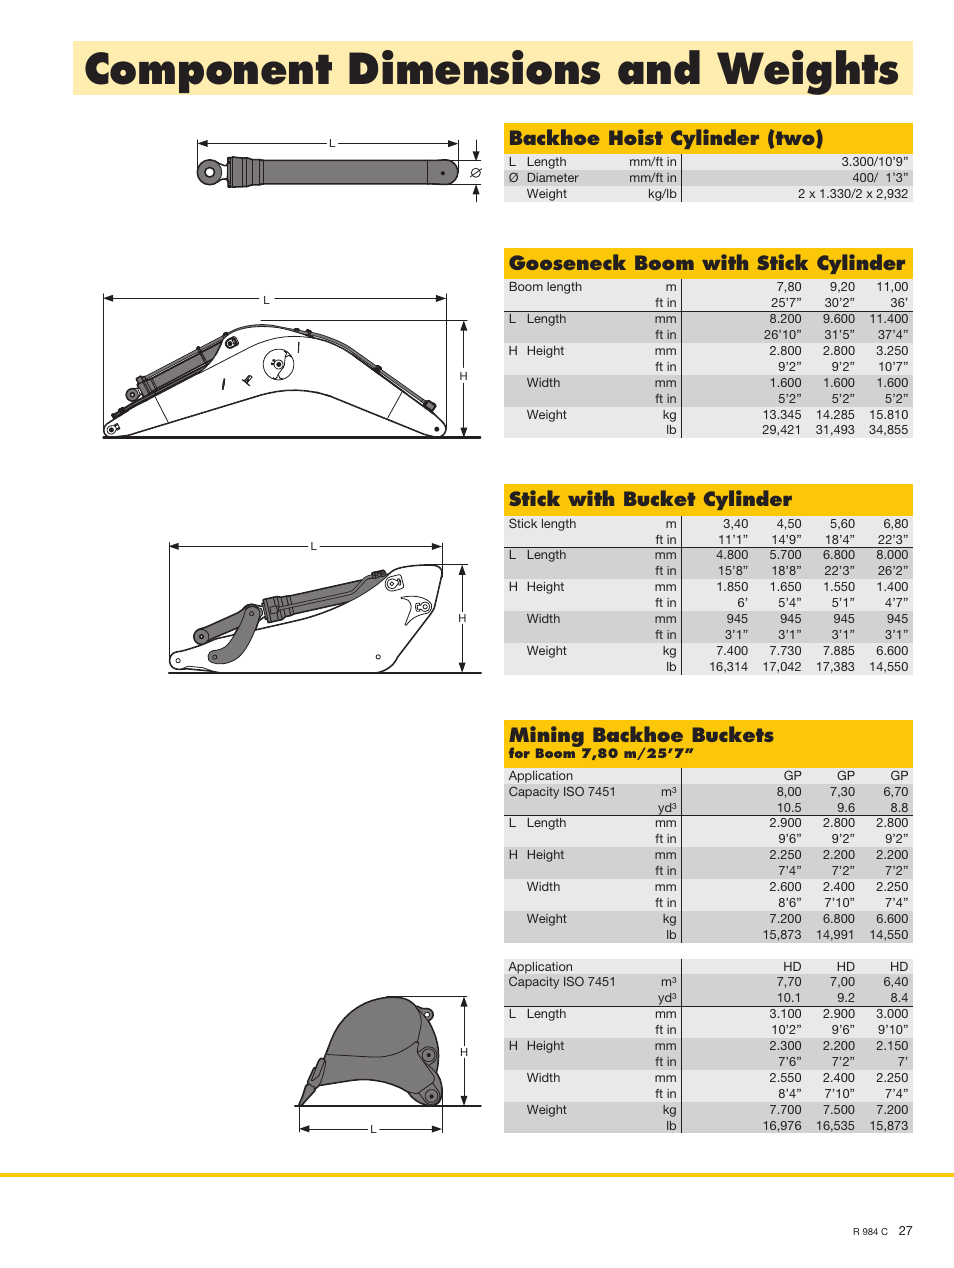 component dimensions and weights  backhoe hoist cylinder  two   gooseneck boom with stick hp 12c manual decimal places hp 12c manual how to change comma to decimal